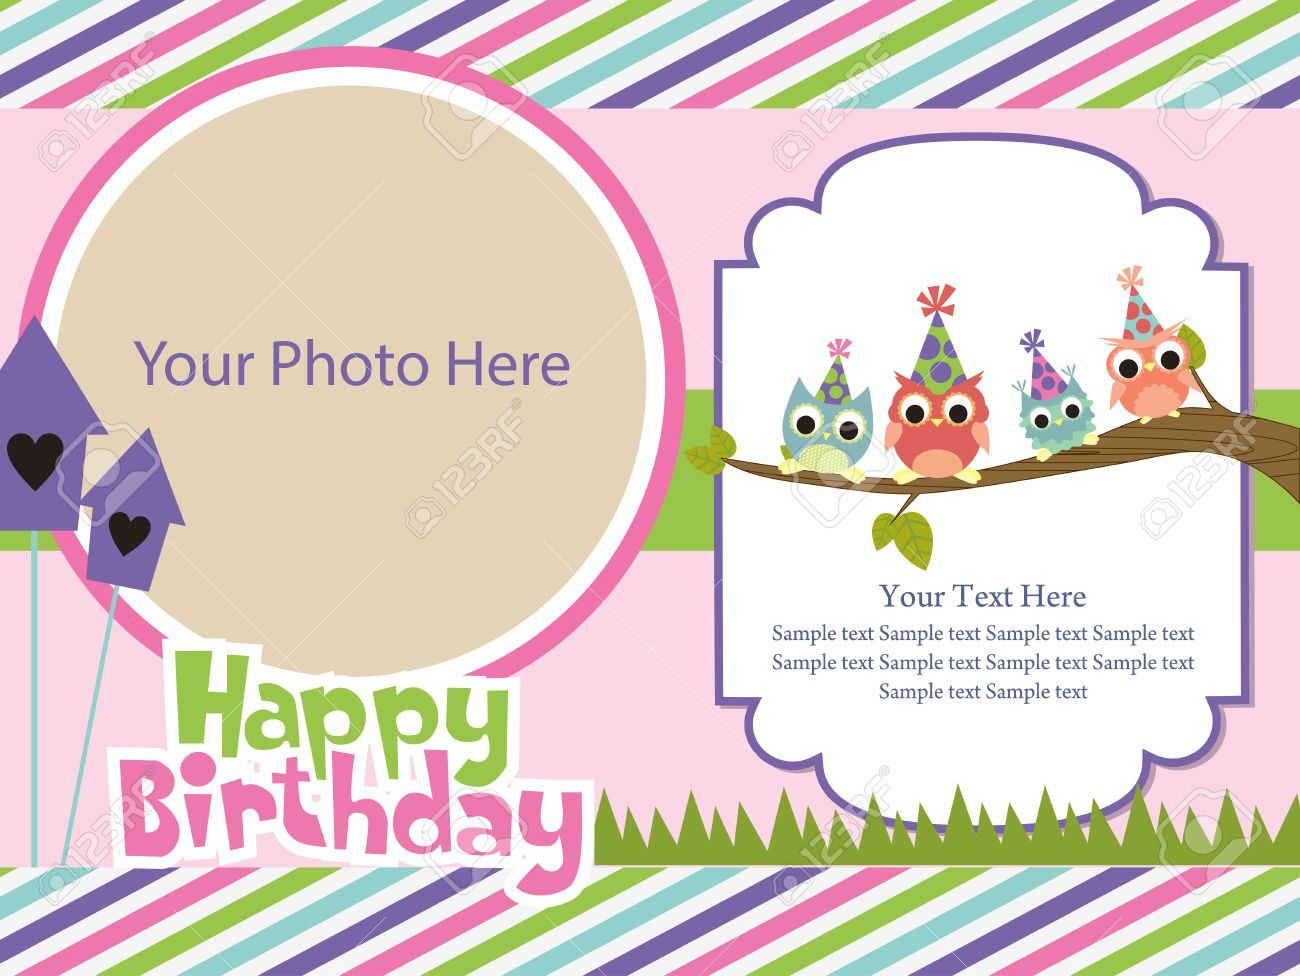 Free Download Birthday Invitation Best Party Ideas In 2019